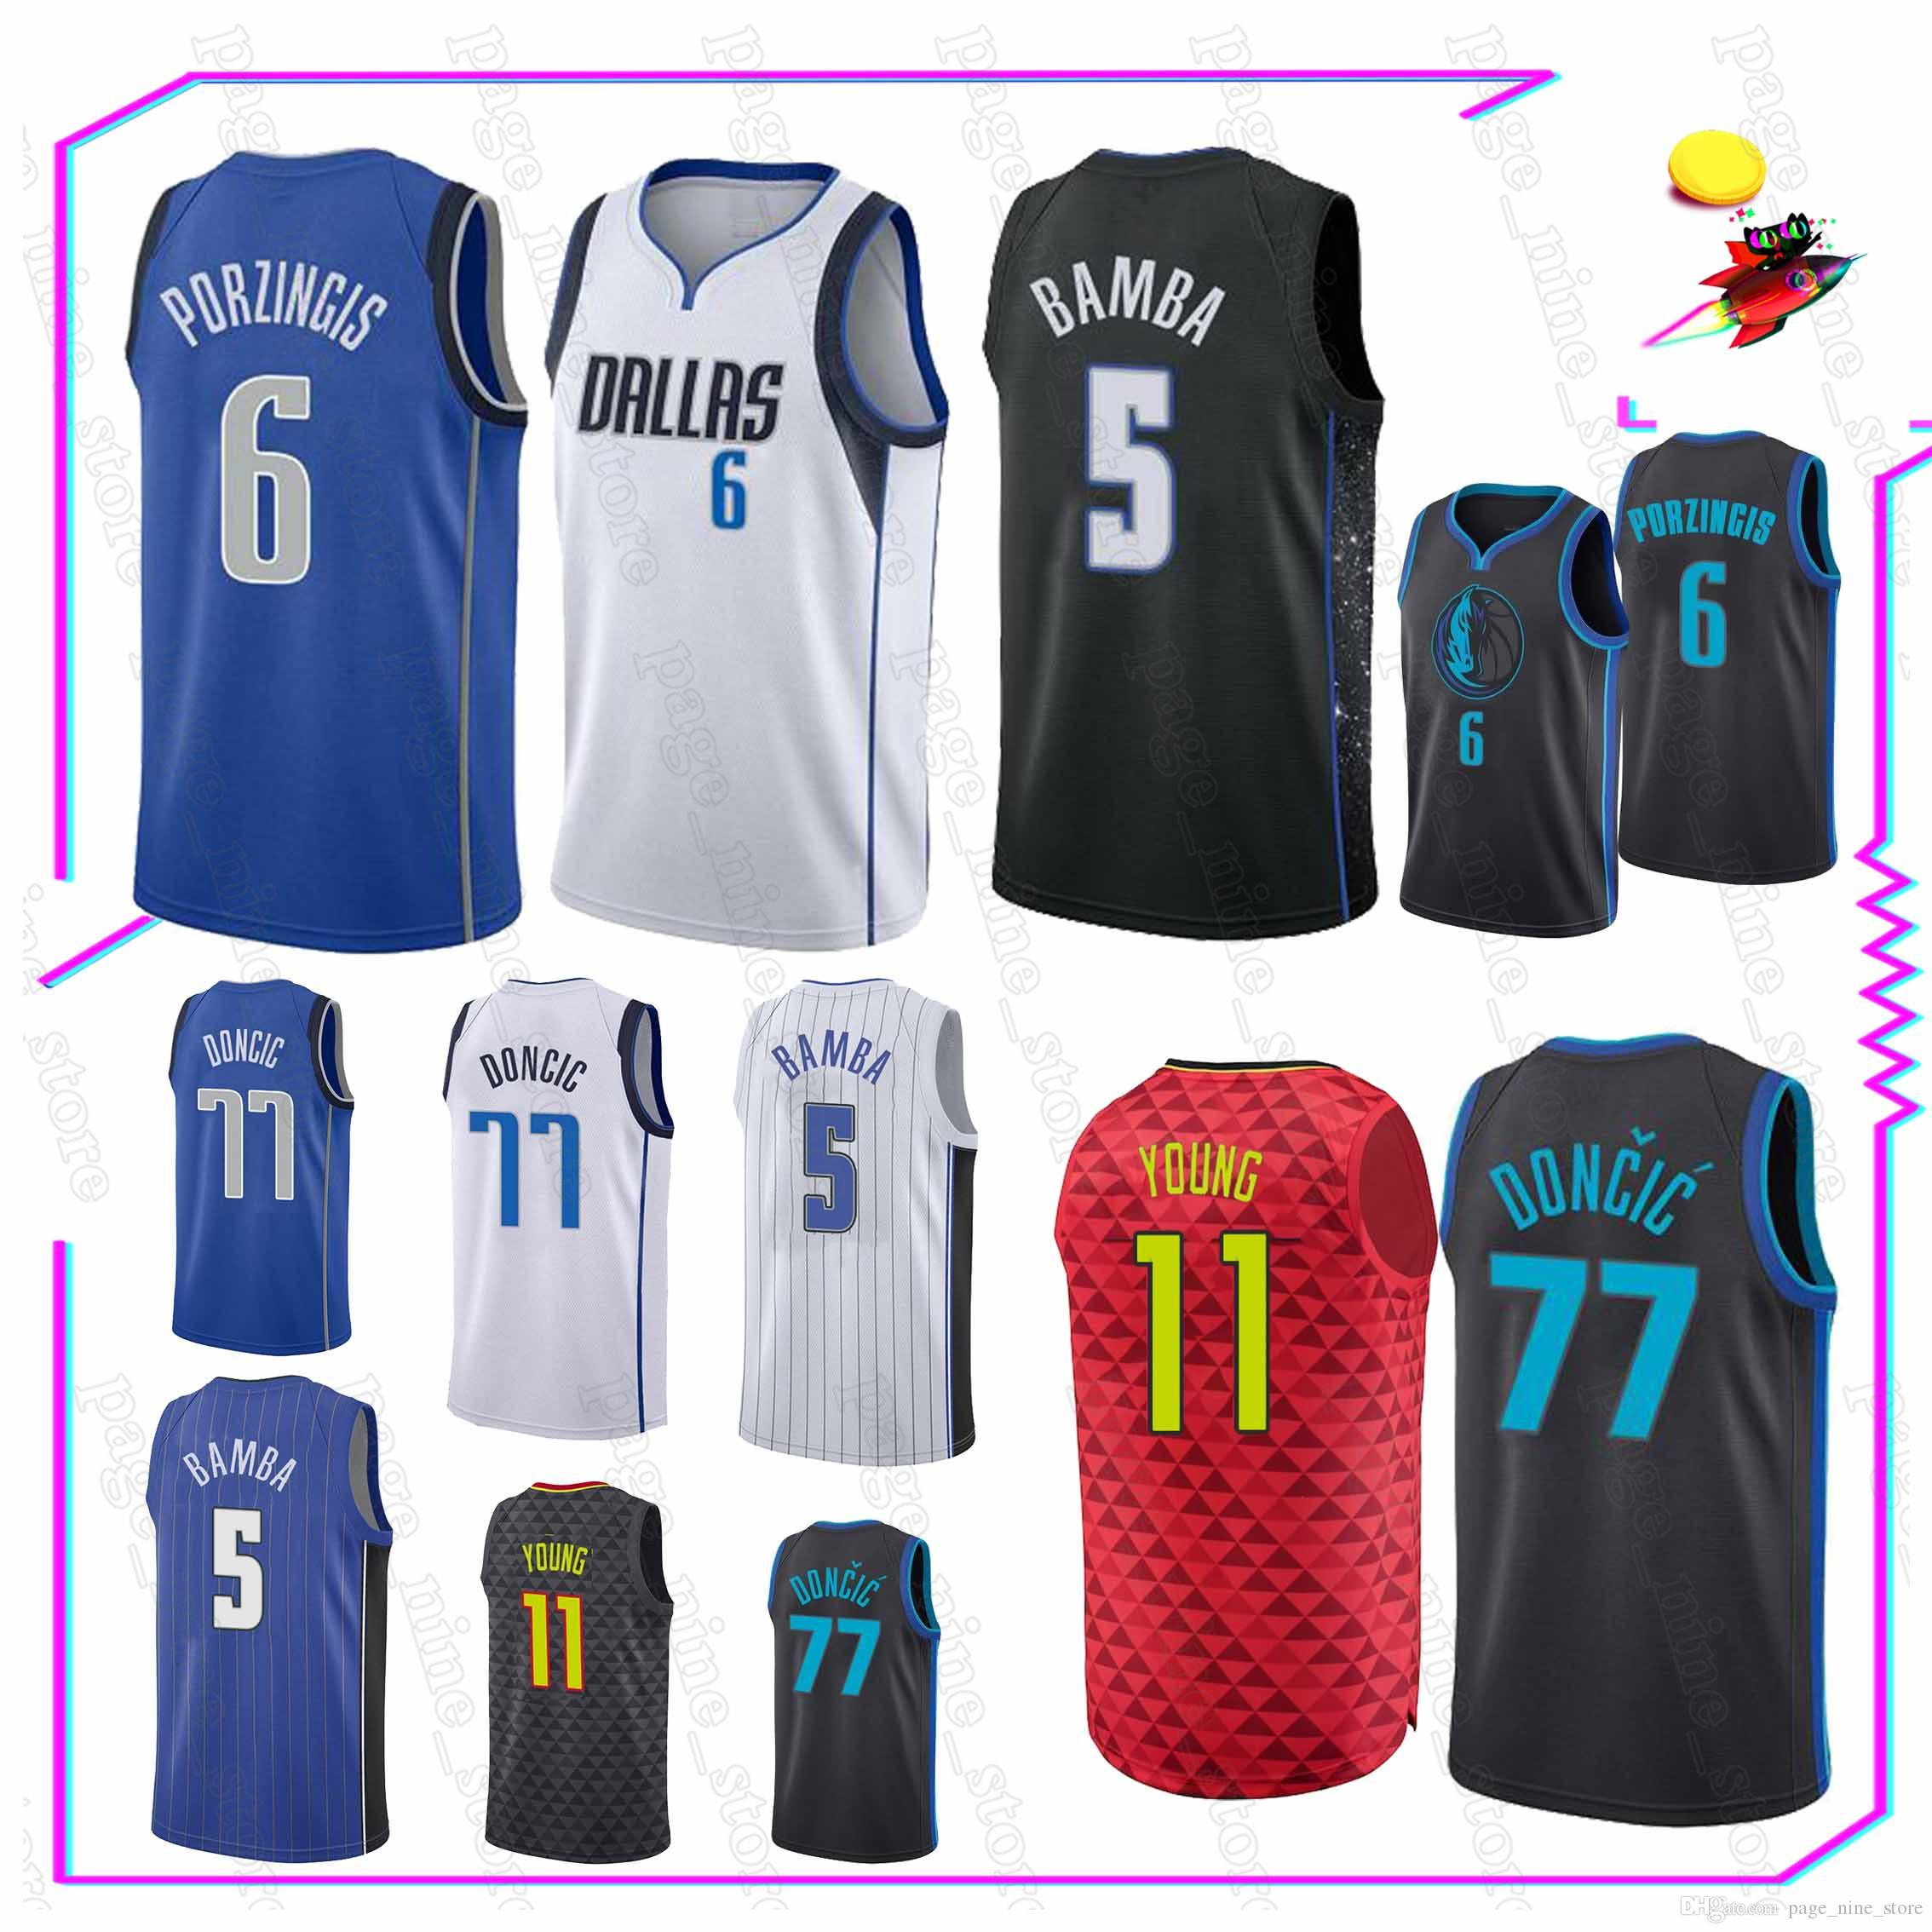 d6faa533 6 Porzingis 77 Doncic 5 Bamba 11 Young jersey Hot sale high-quality 2019  new men basketball tracksuit jersey